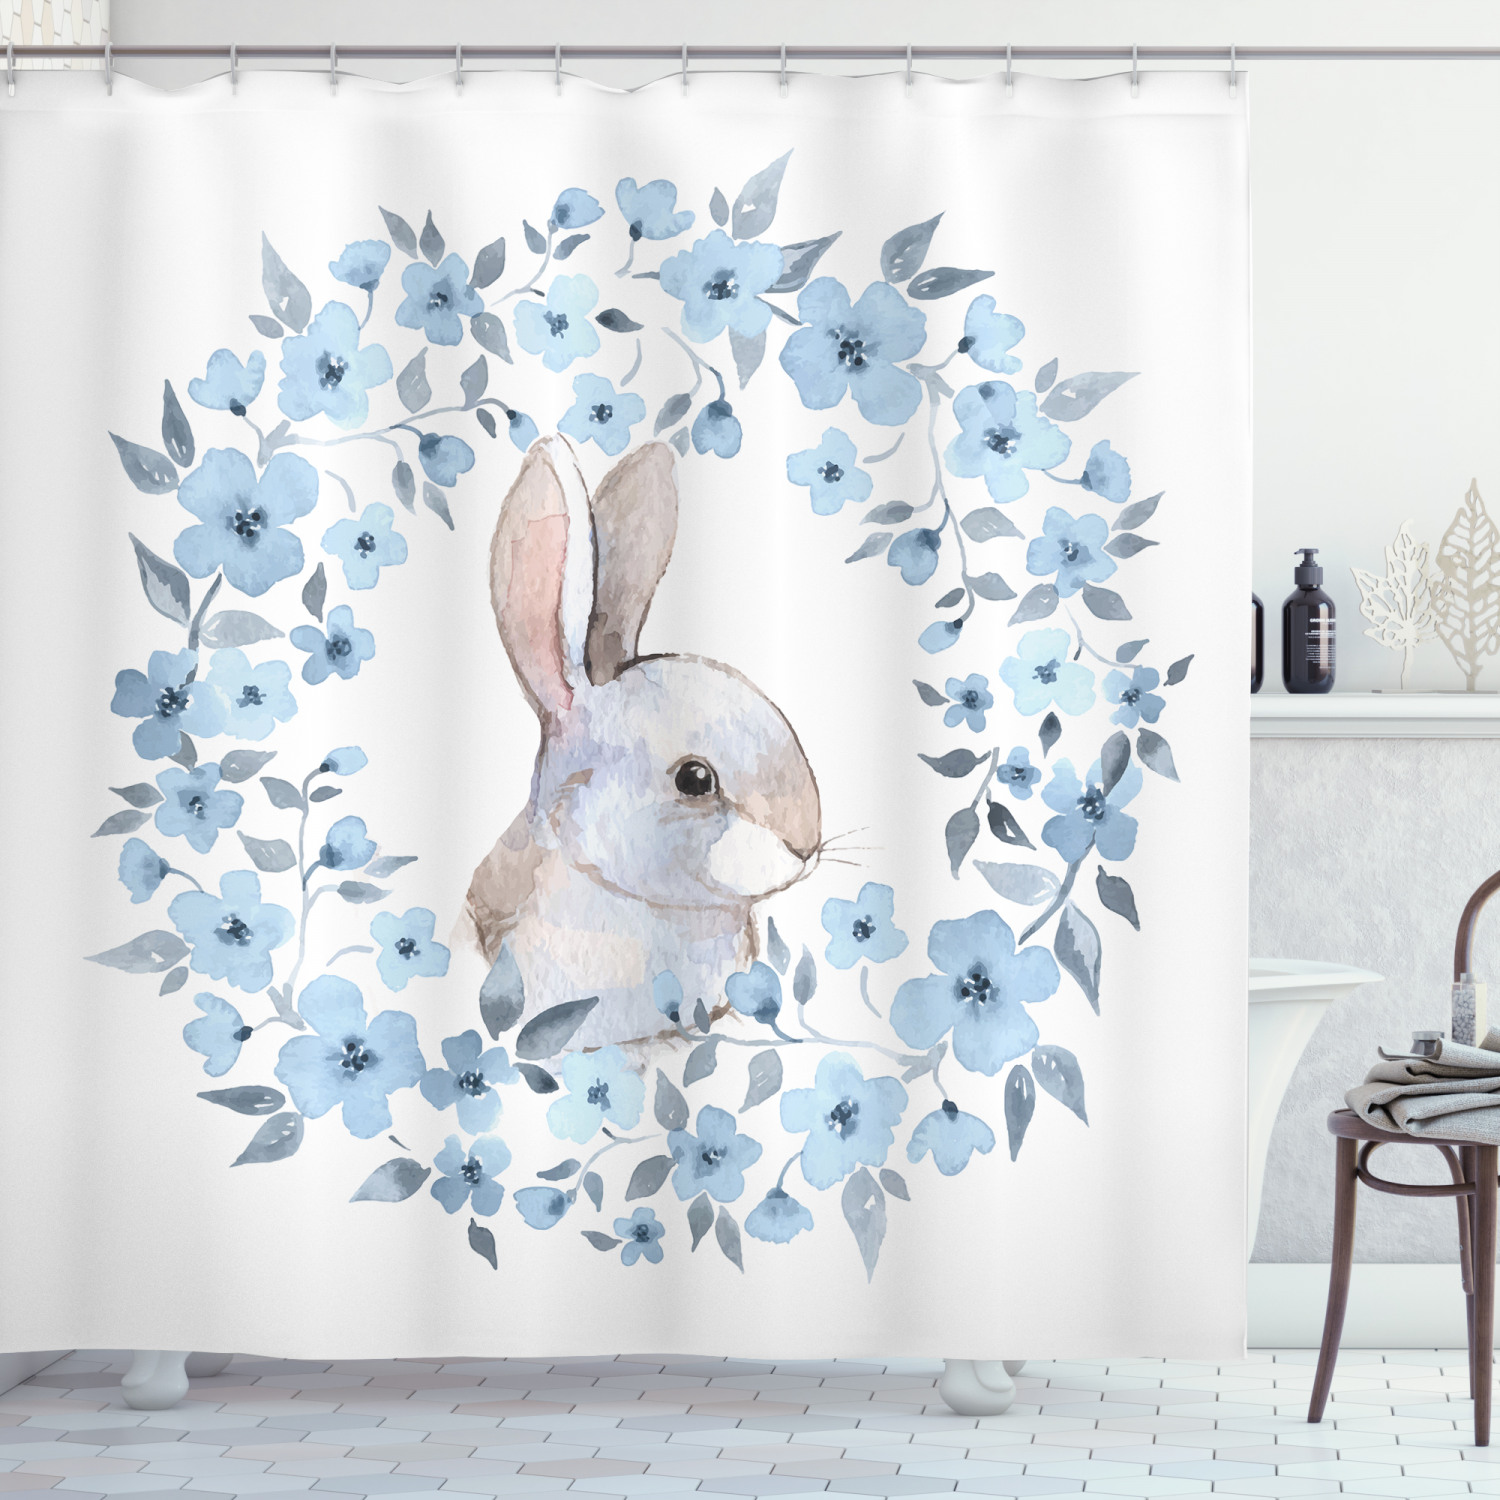 watercolor flower shower curtain bunny rabbit portrait in floral wreath illustration country style fabric bathroom set with hooks blue grey white